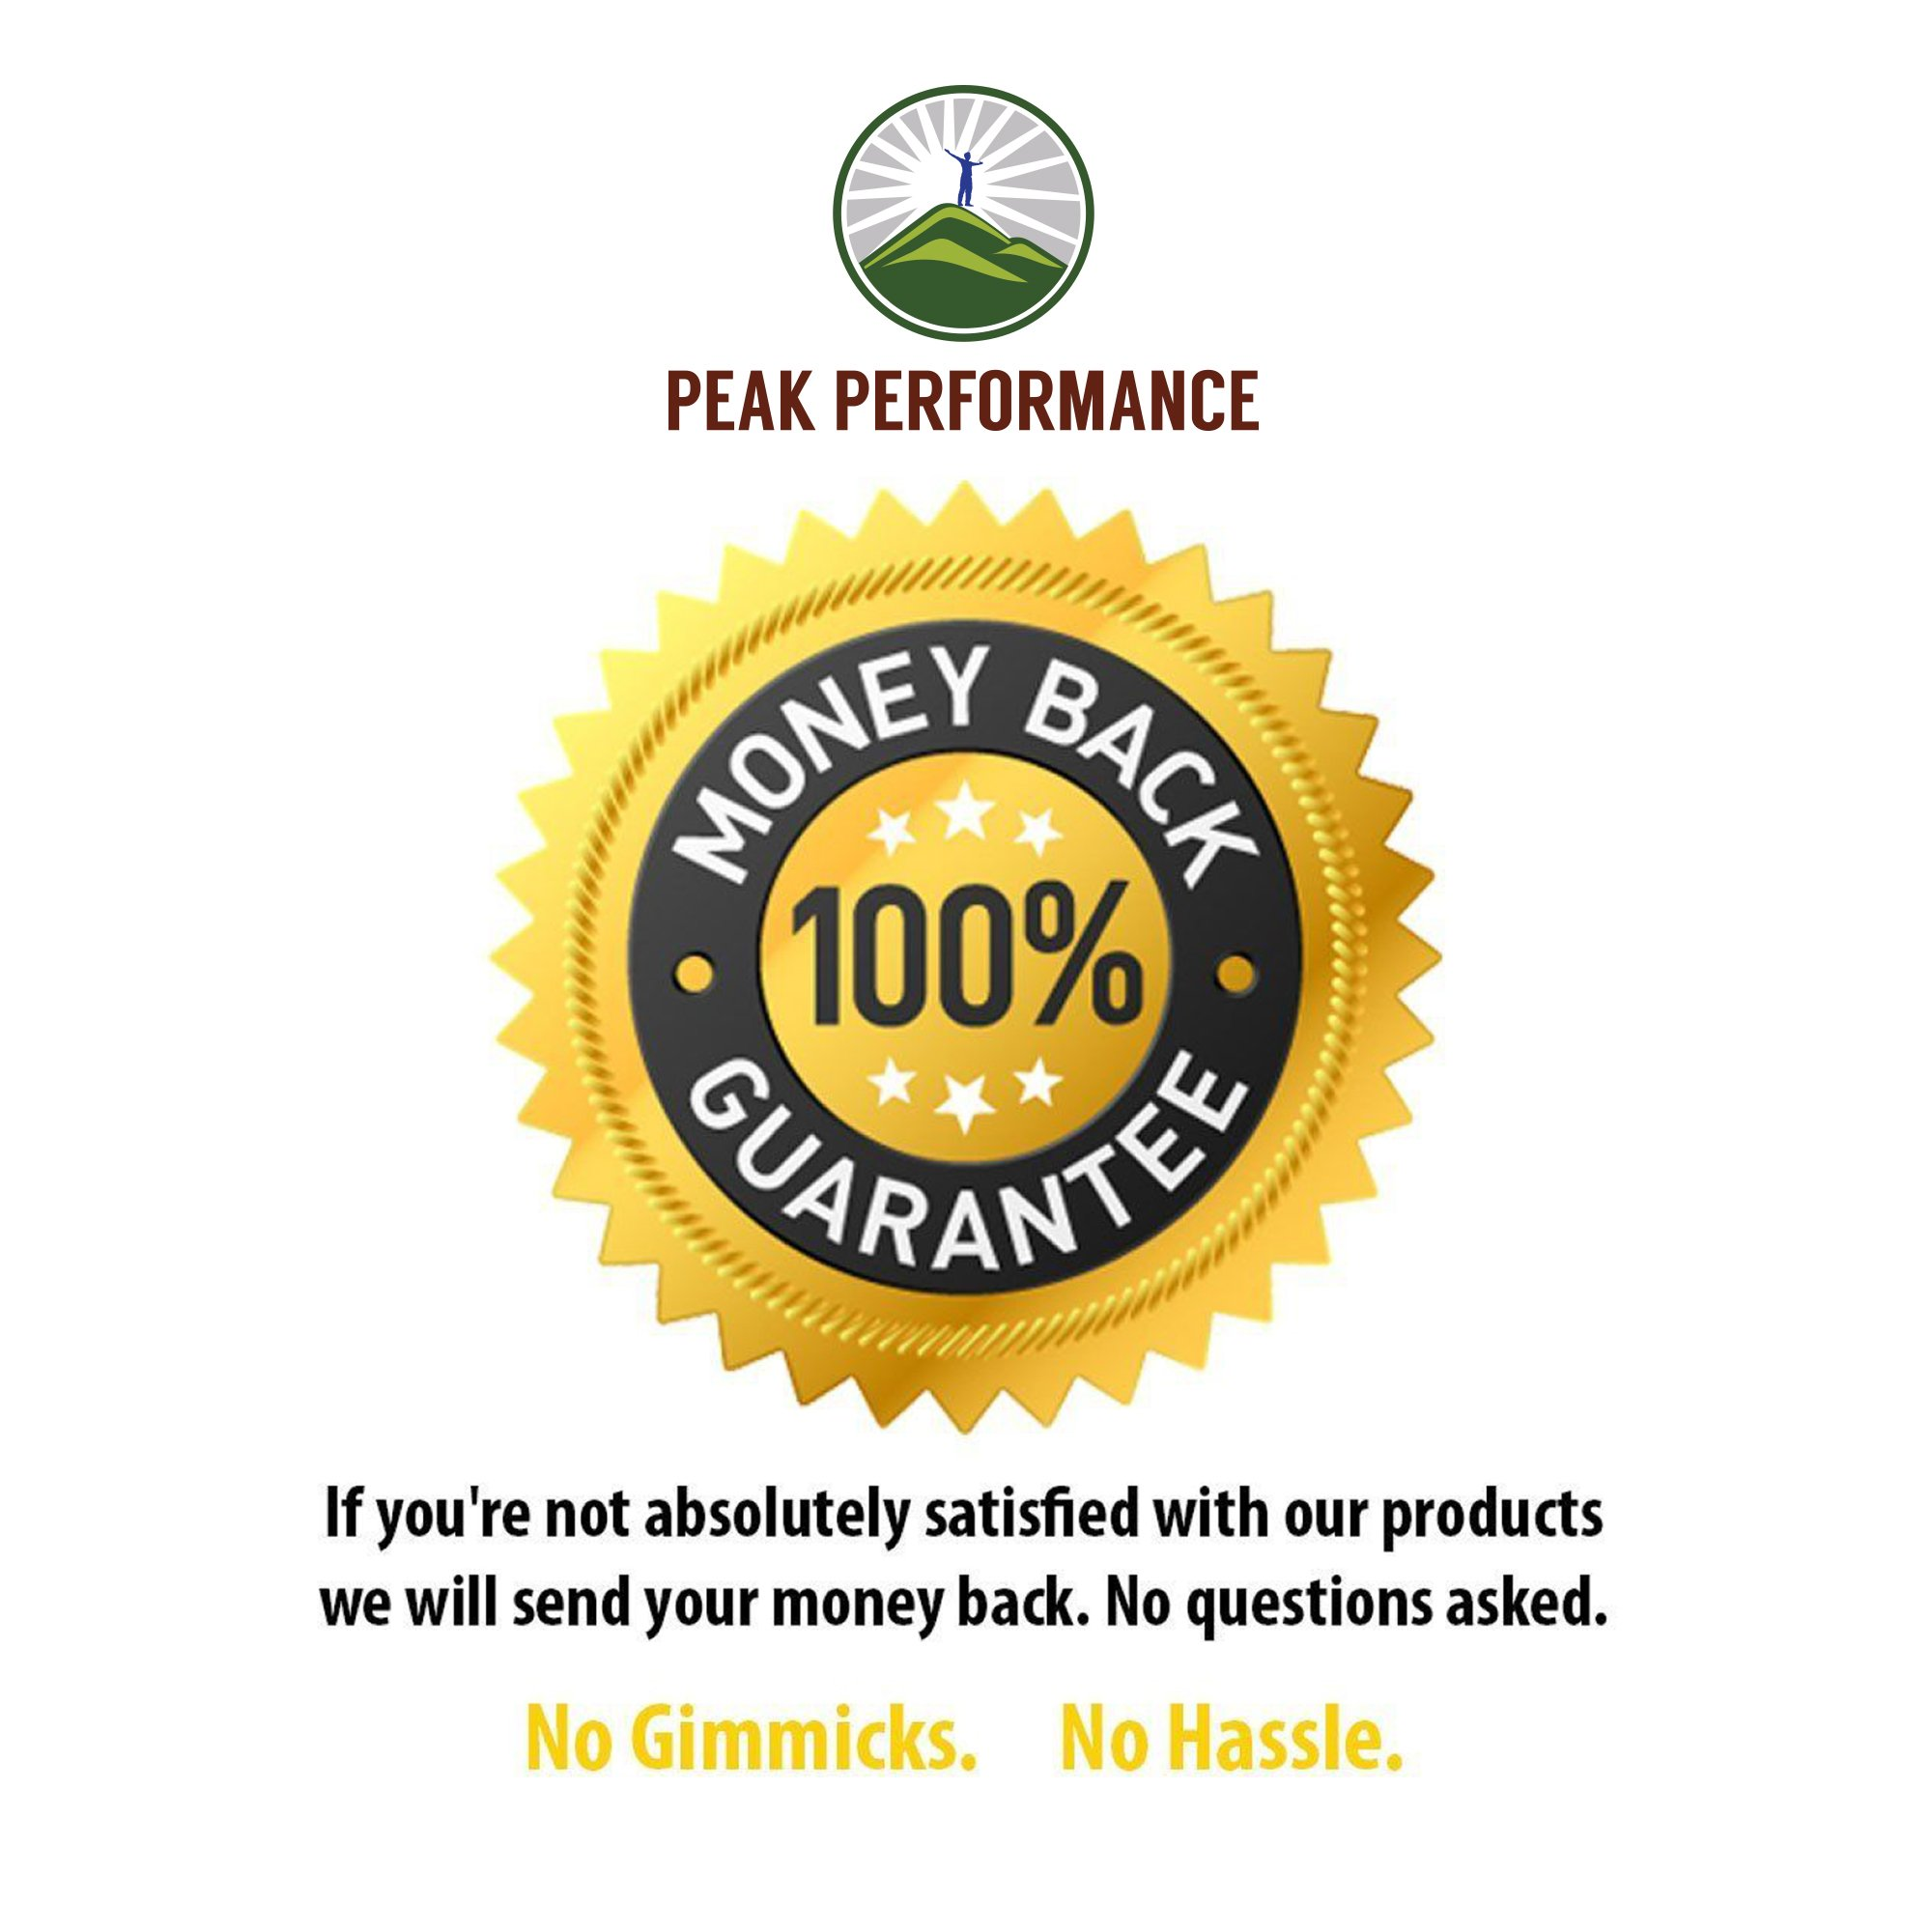 Pure Pasture Raised Grass Fed Hydrolyzed Collagen Protein by Peak Performance. Paleo Friendly, Gluten & Dairy Free Collagen Peptides (Unflavored Collagen) by Peak Performance Coffee (Image #8)